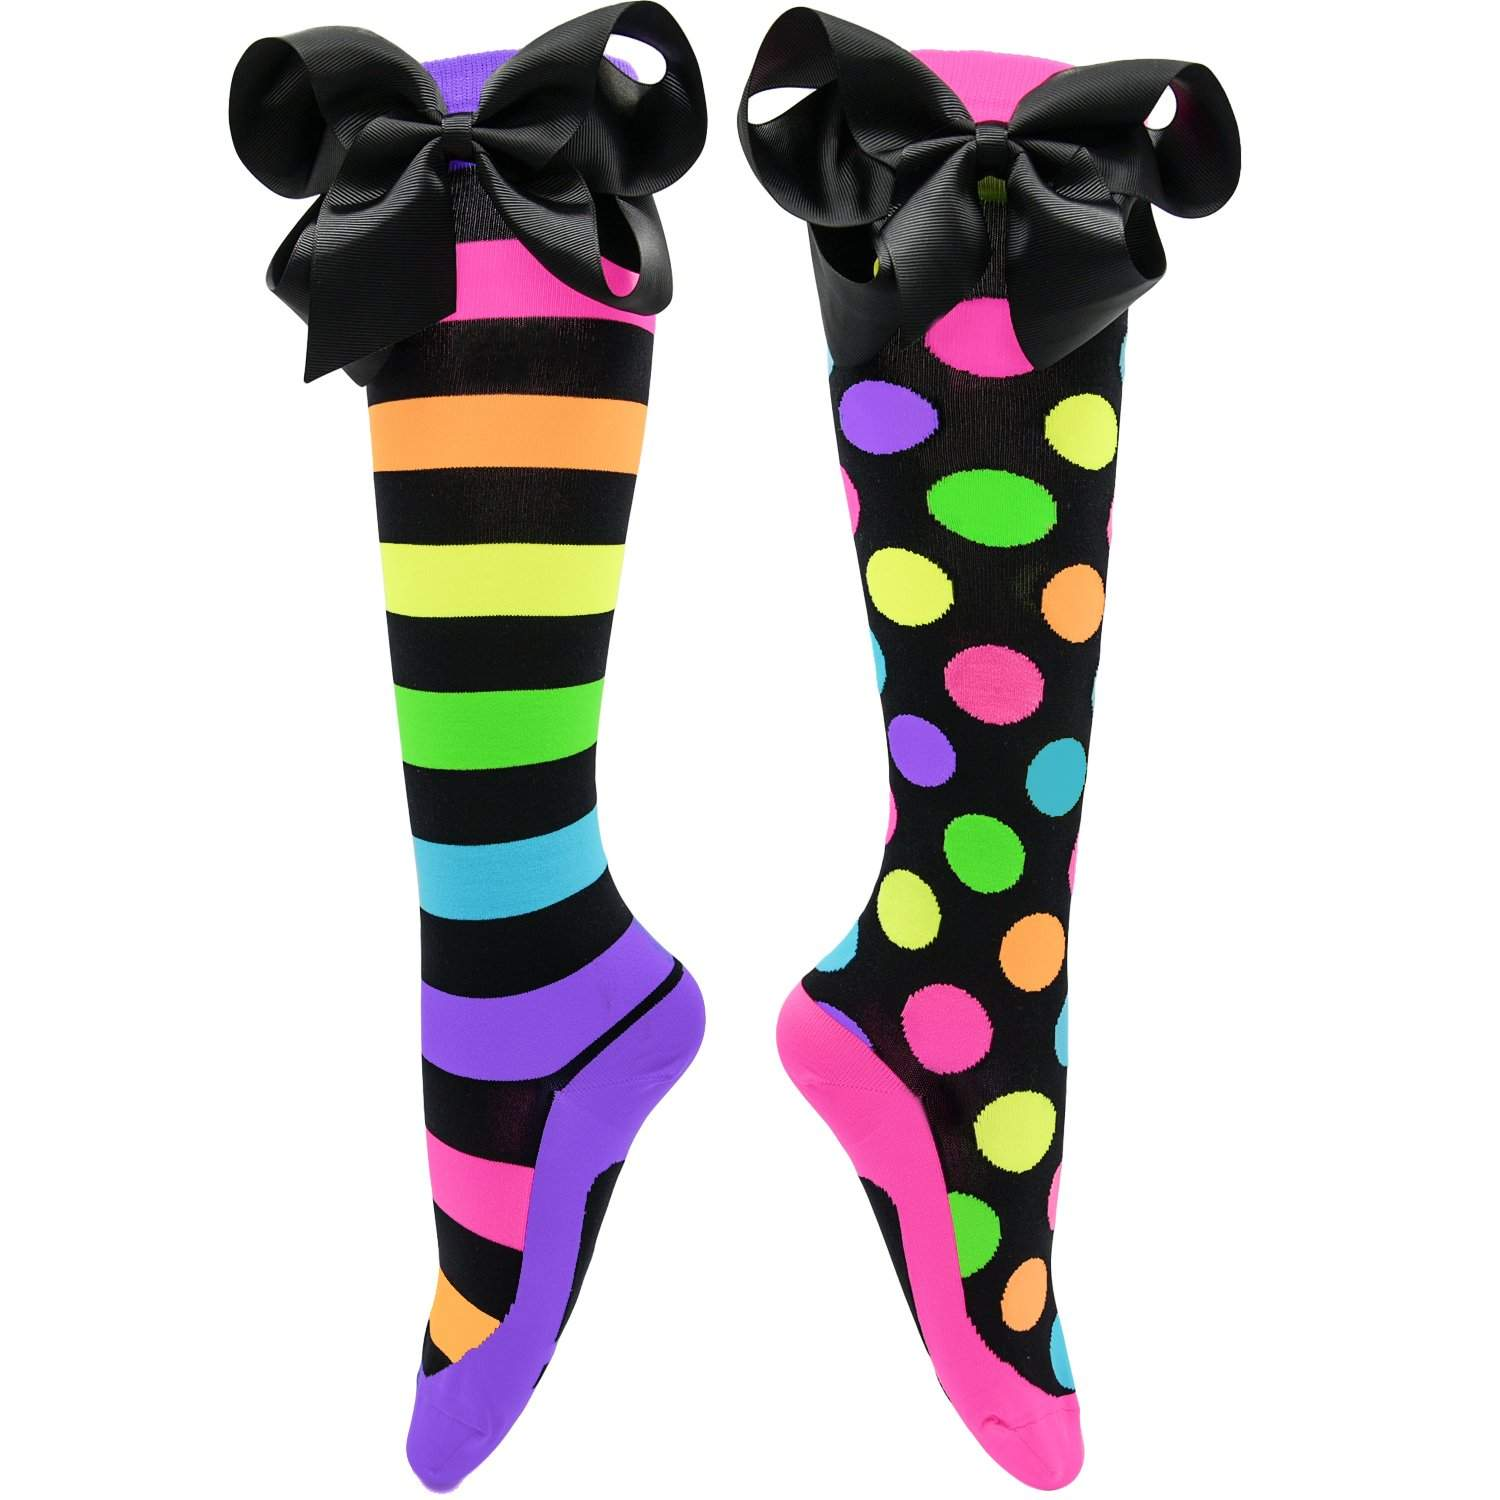 GLITZ N GLAM SOCKS PACK -valued at $120